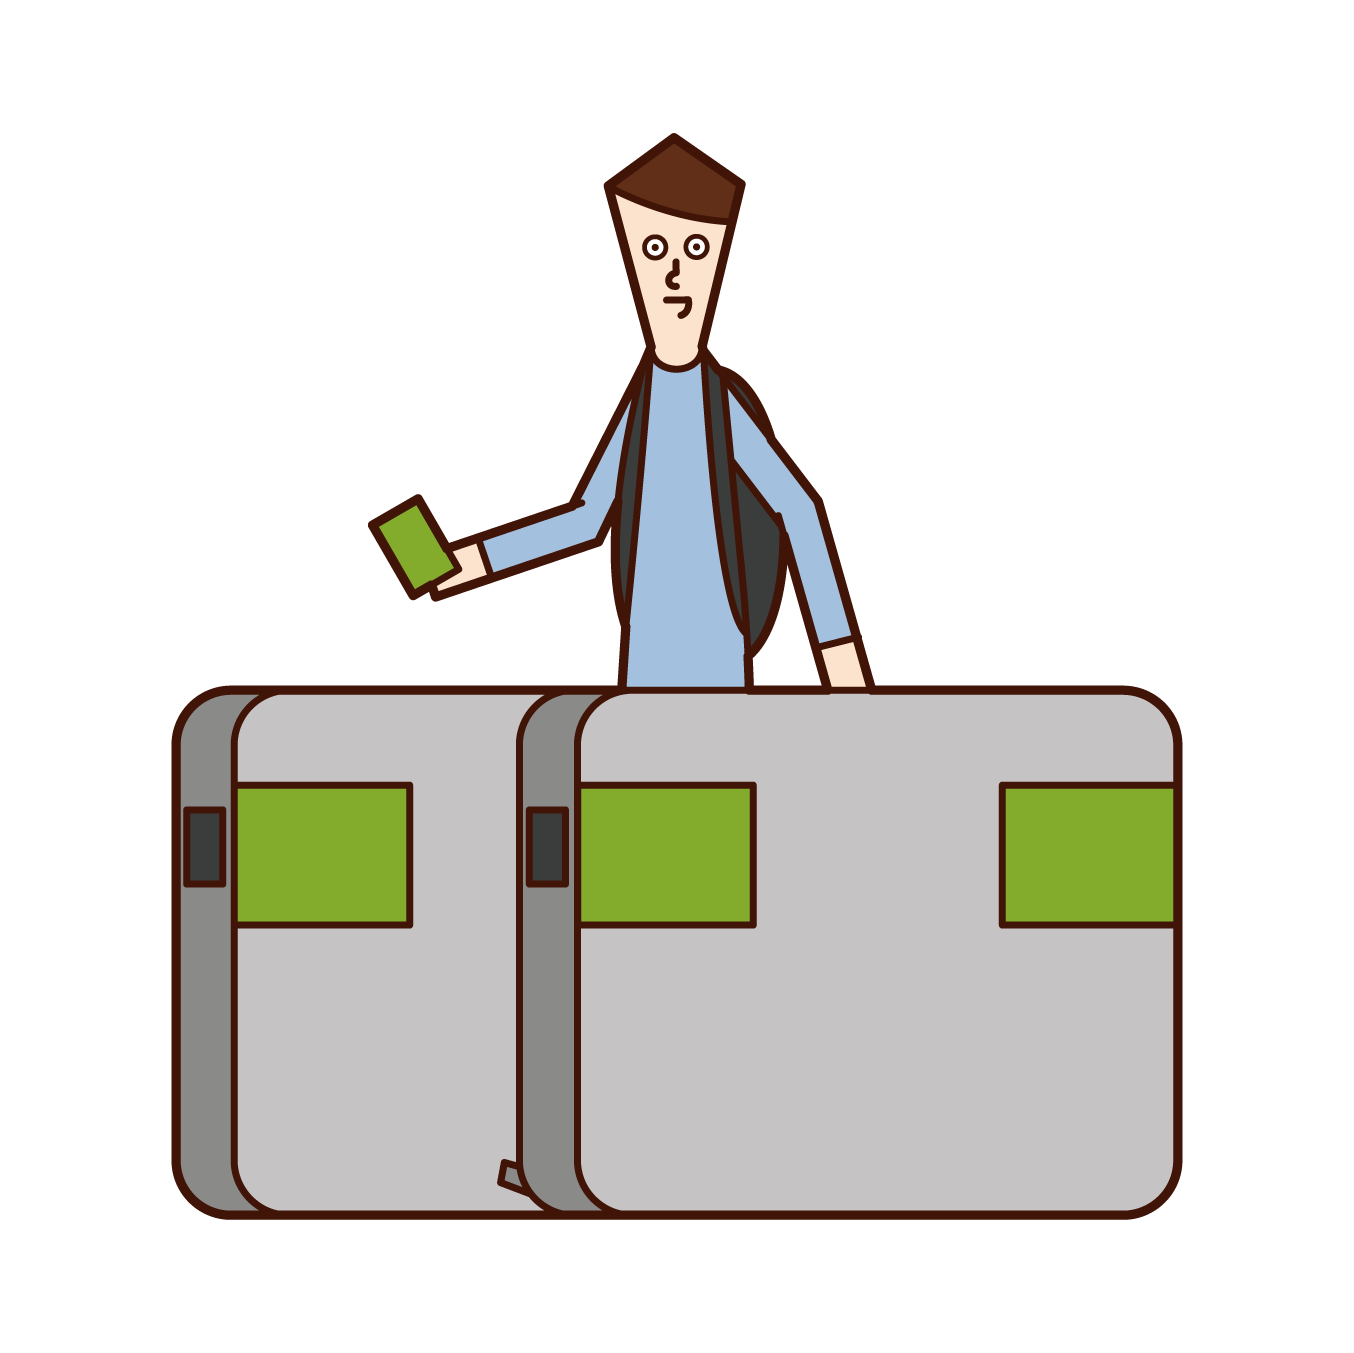 Illustration of a man passing through the ticket gate of a station